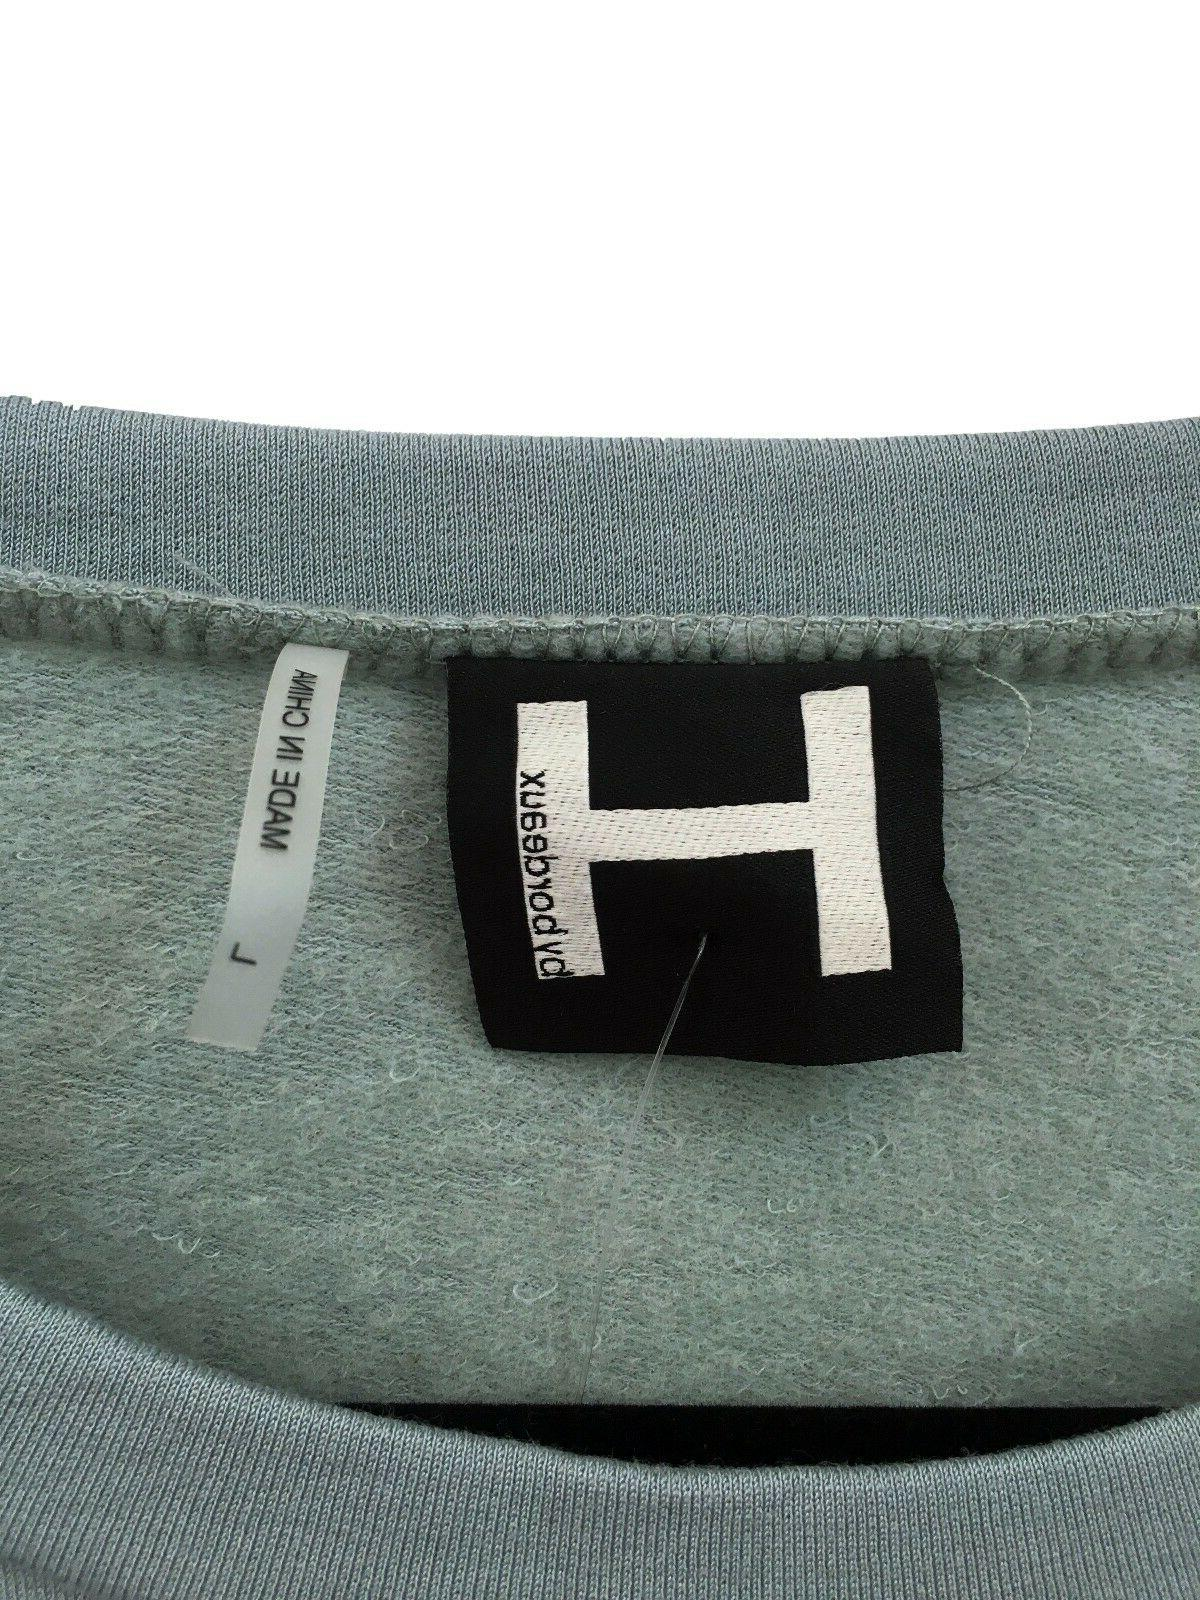 H by Womans Sleeve Light